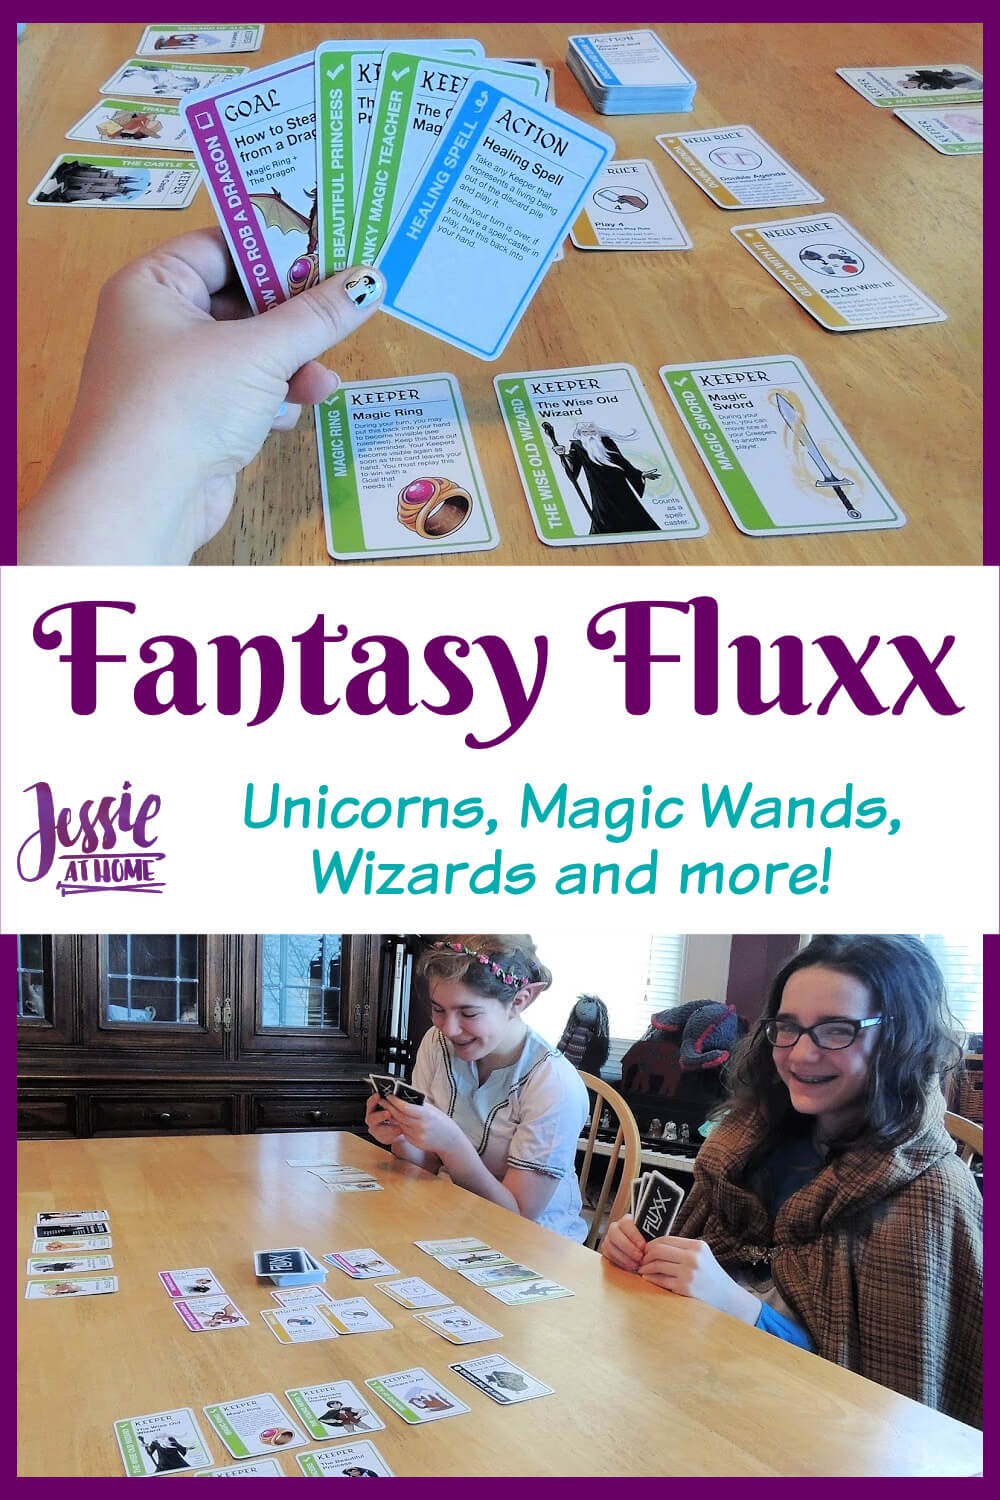 Fantasy Fluxx - Unicorns, Magic Wands, Wizards and more!